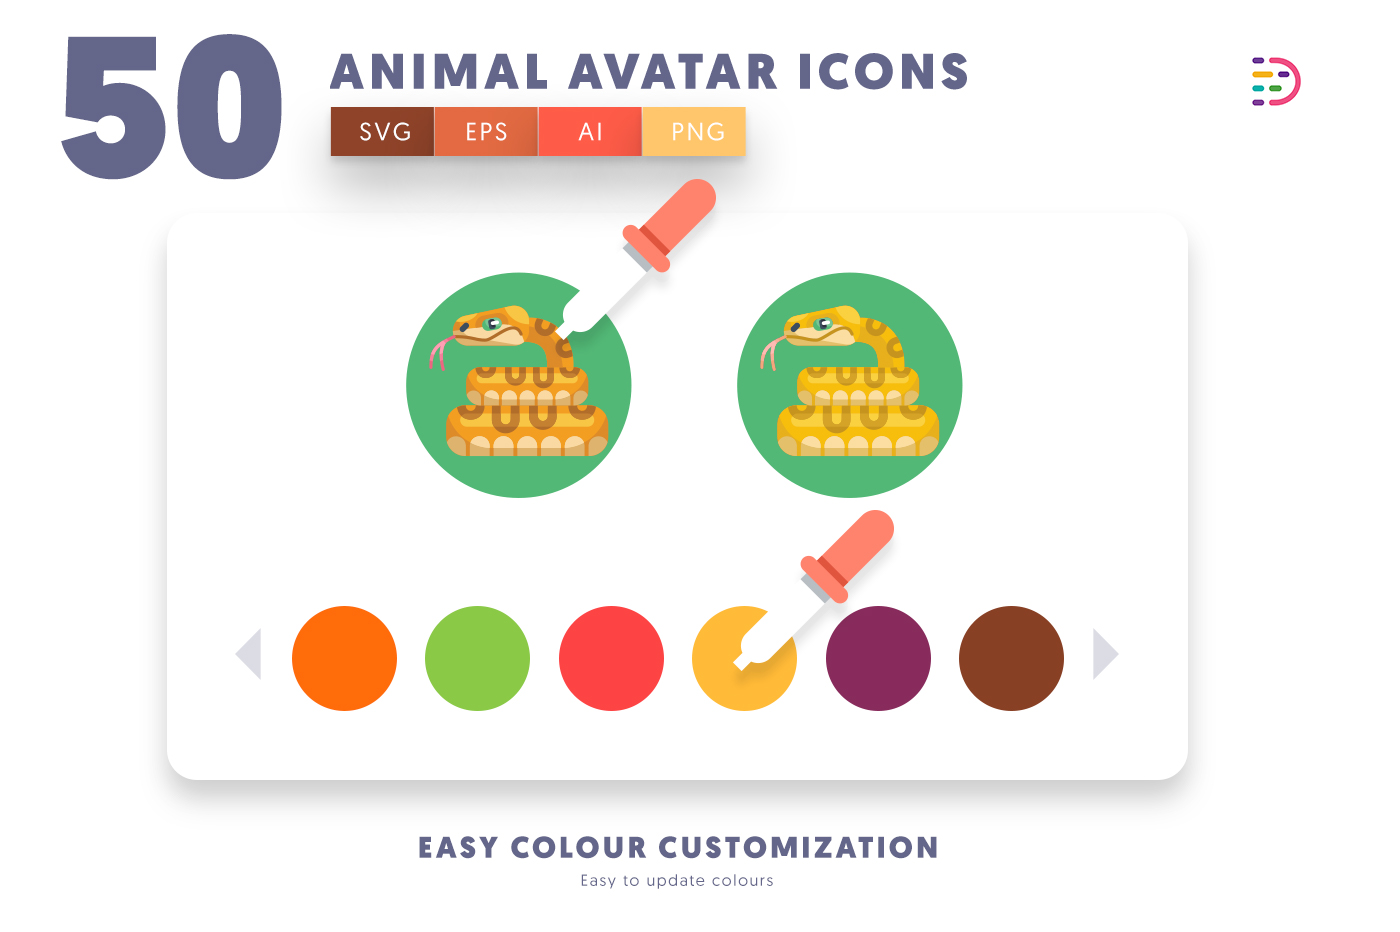 Customizable and vector 50 Animal Avatar Icons